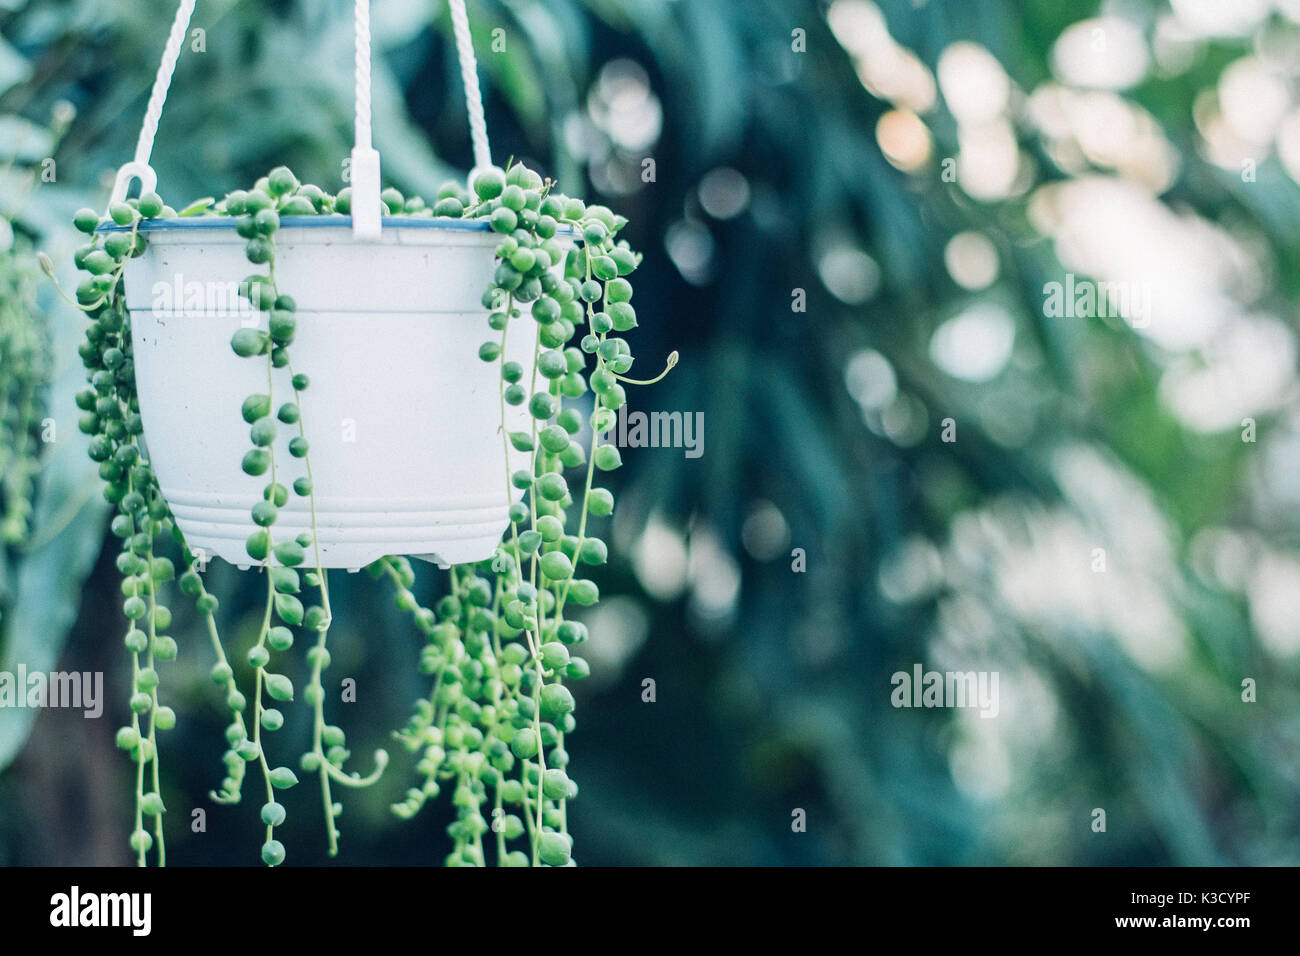 string of pearls succulent plant hanging in a greenhouse, symbolizing calm and serenity - Stock Image